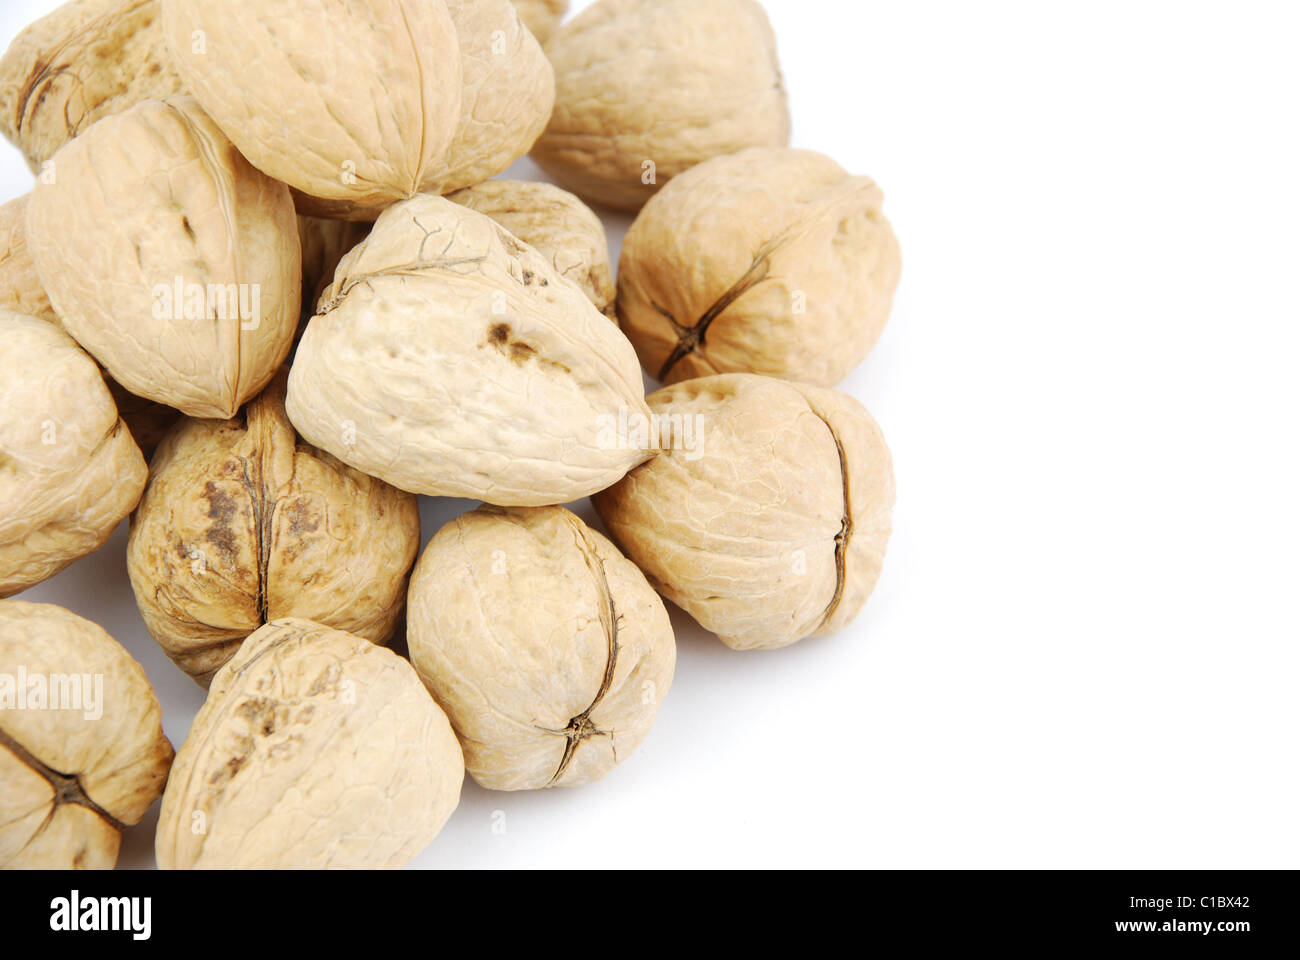 walnuts on white - Stock Image